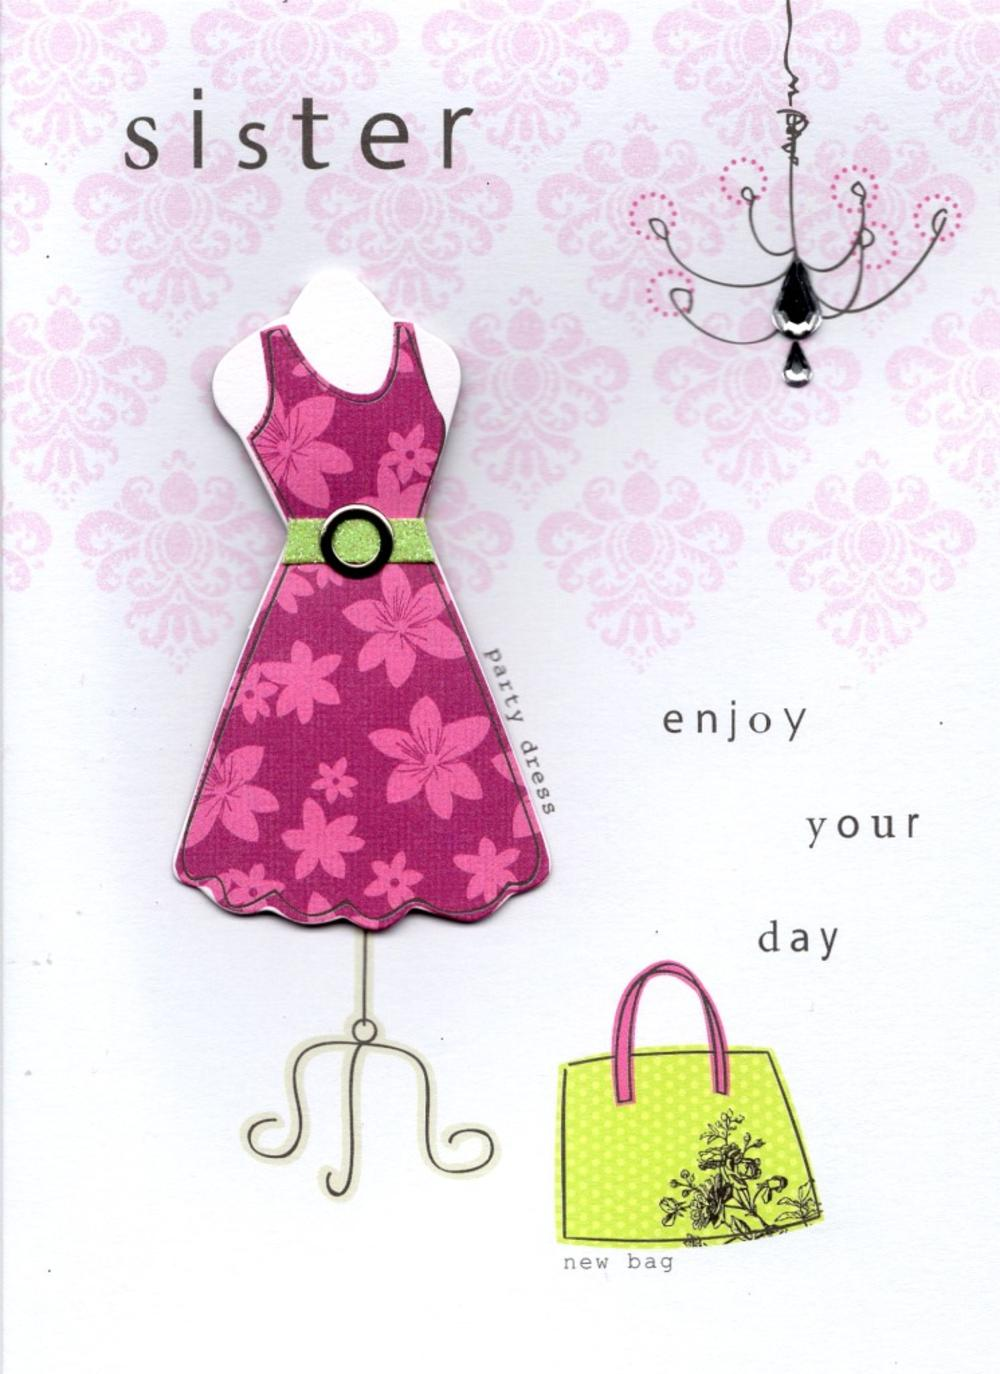 Sister pretty dress handmade happy birthday card cards love kates sister pretty dress handmade happy birthday card bookmarktalkfo